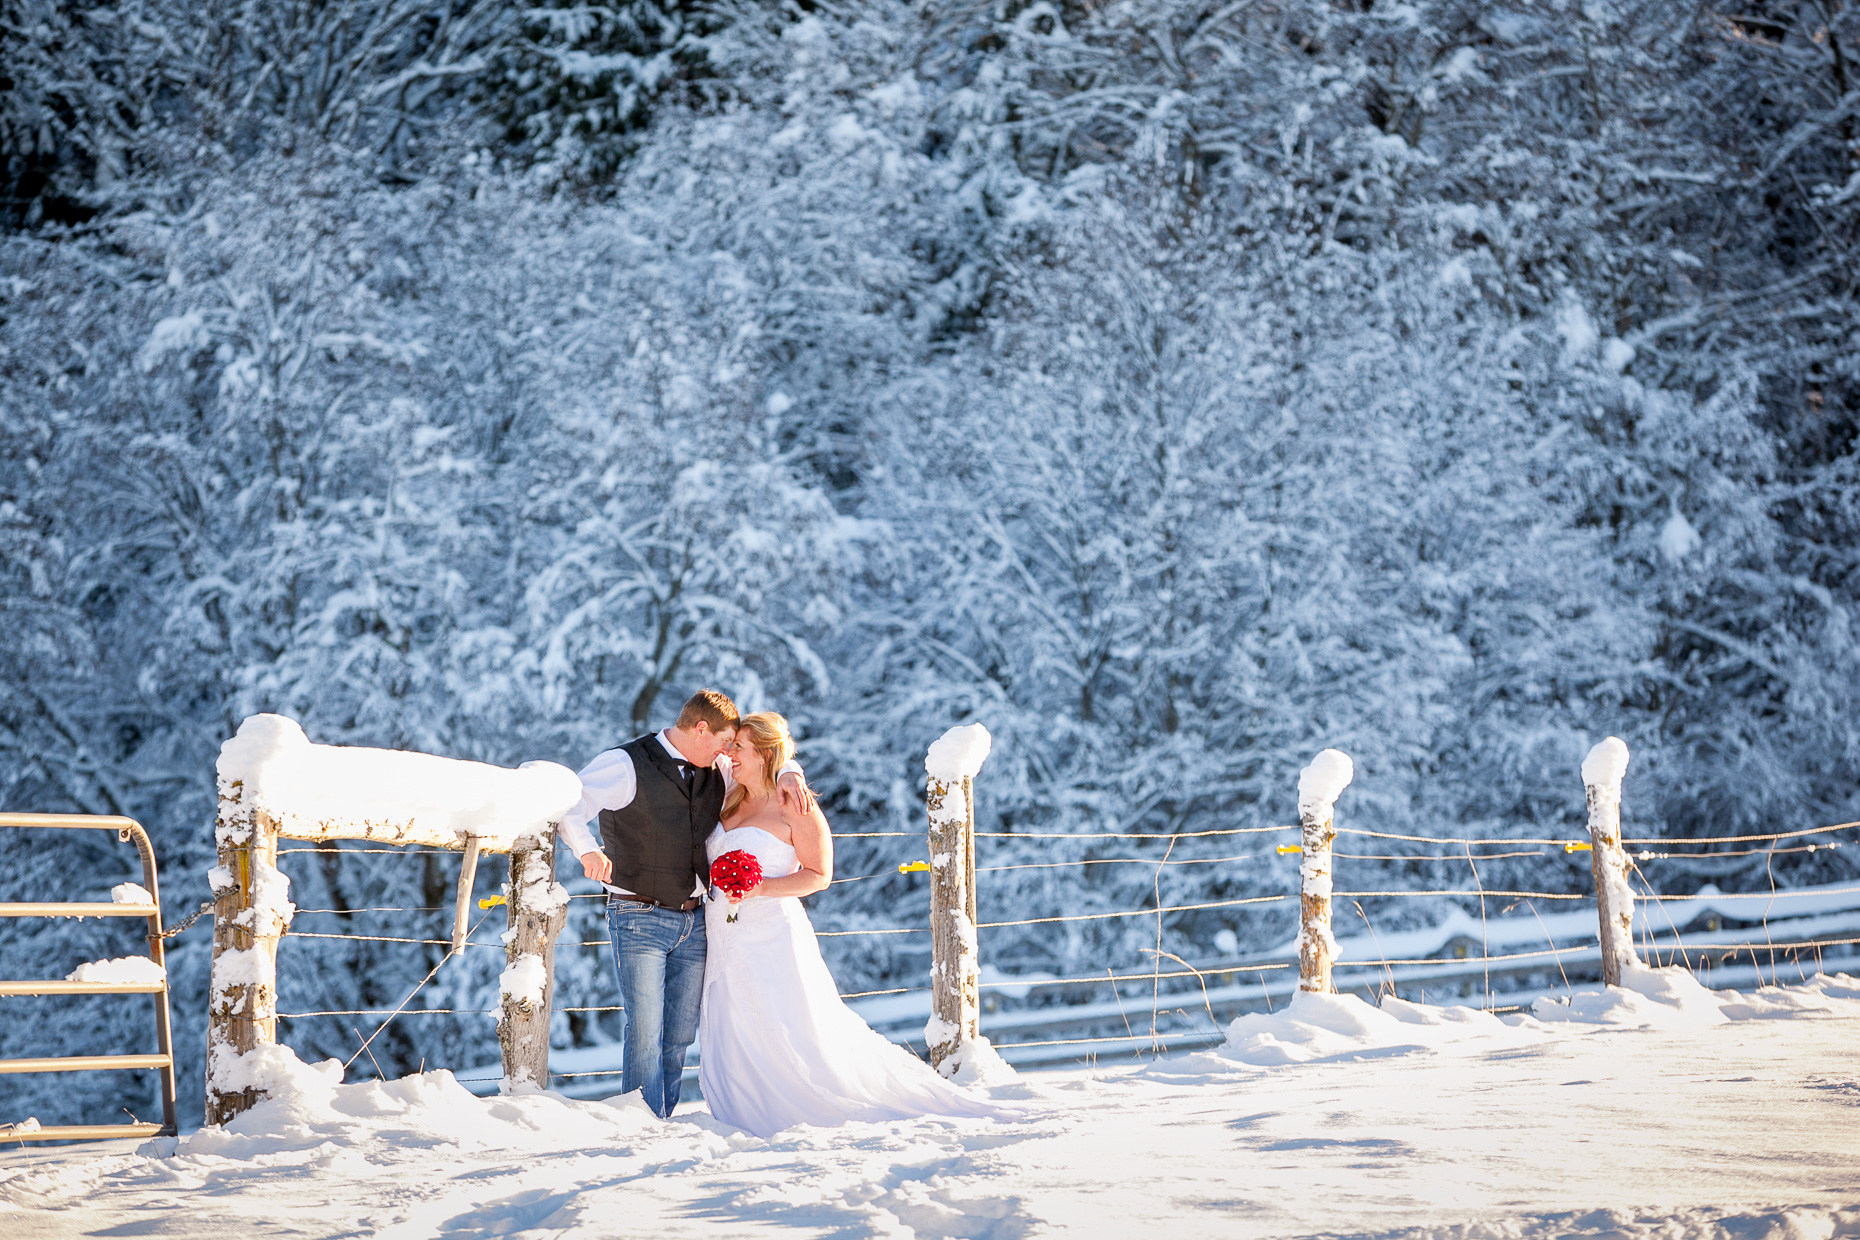 mt-hood-bed-breakfast-elopement-snow-55